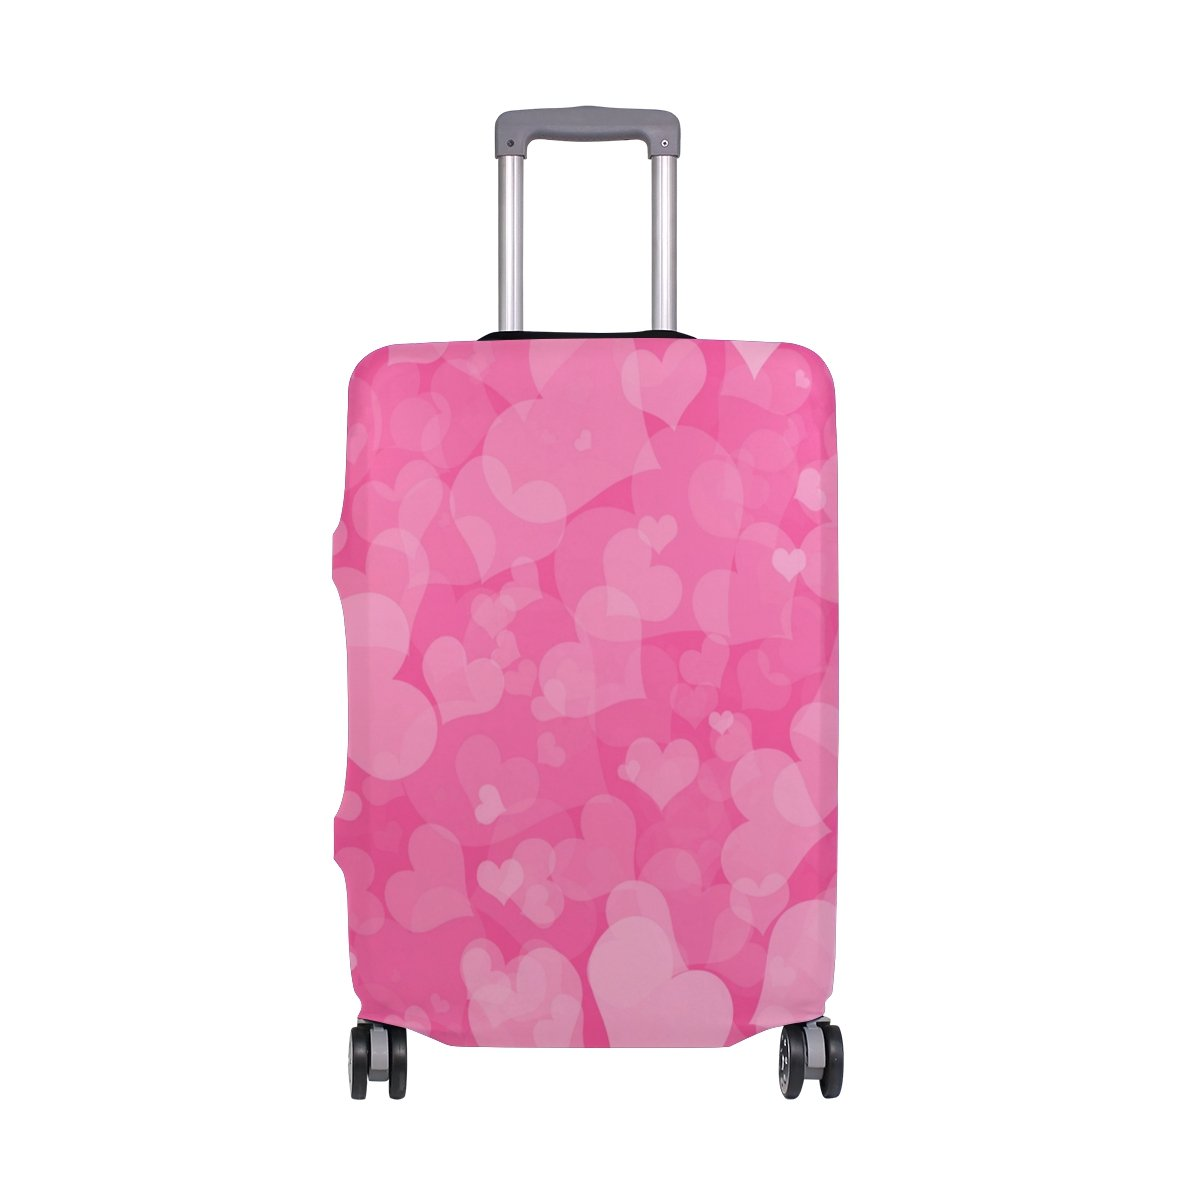 My Daily Hearts Valentine's Day Wedding Luggage Cover Fits 28-29 Inch Suitcase Spandex Travel Protector L